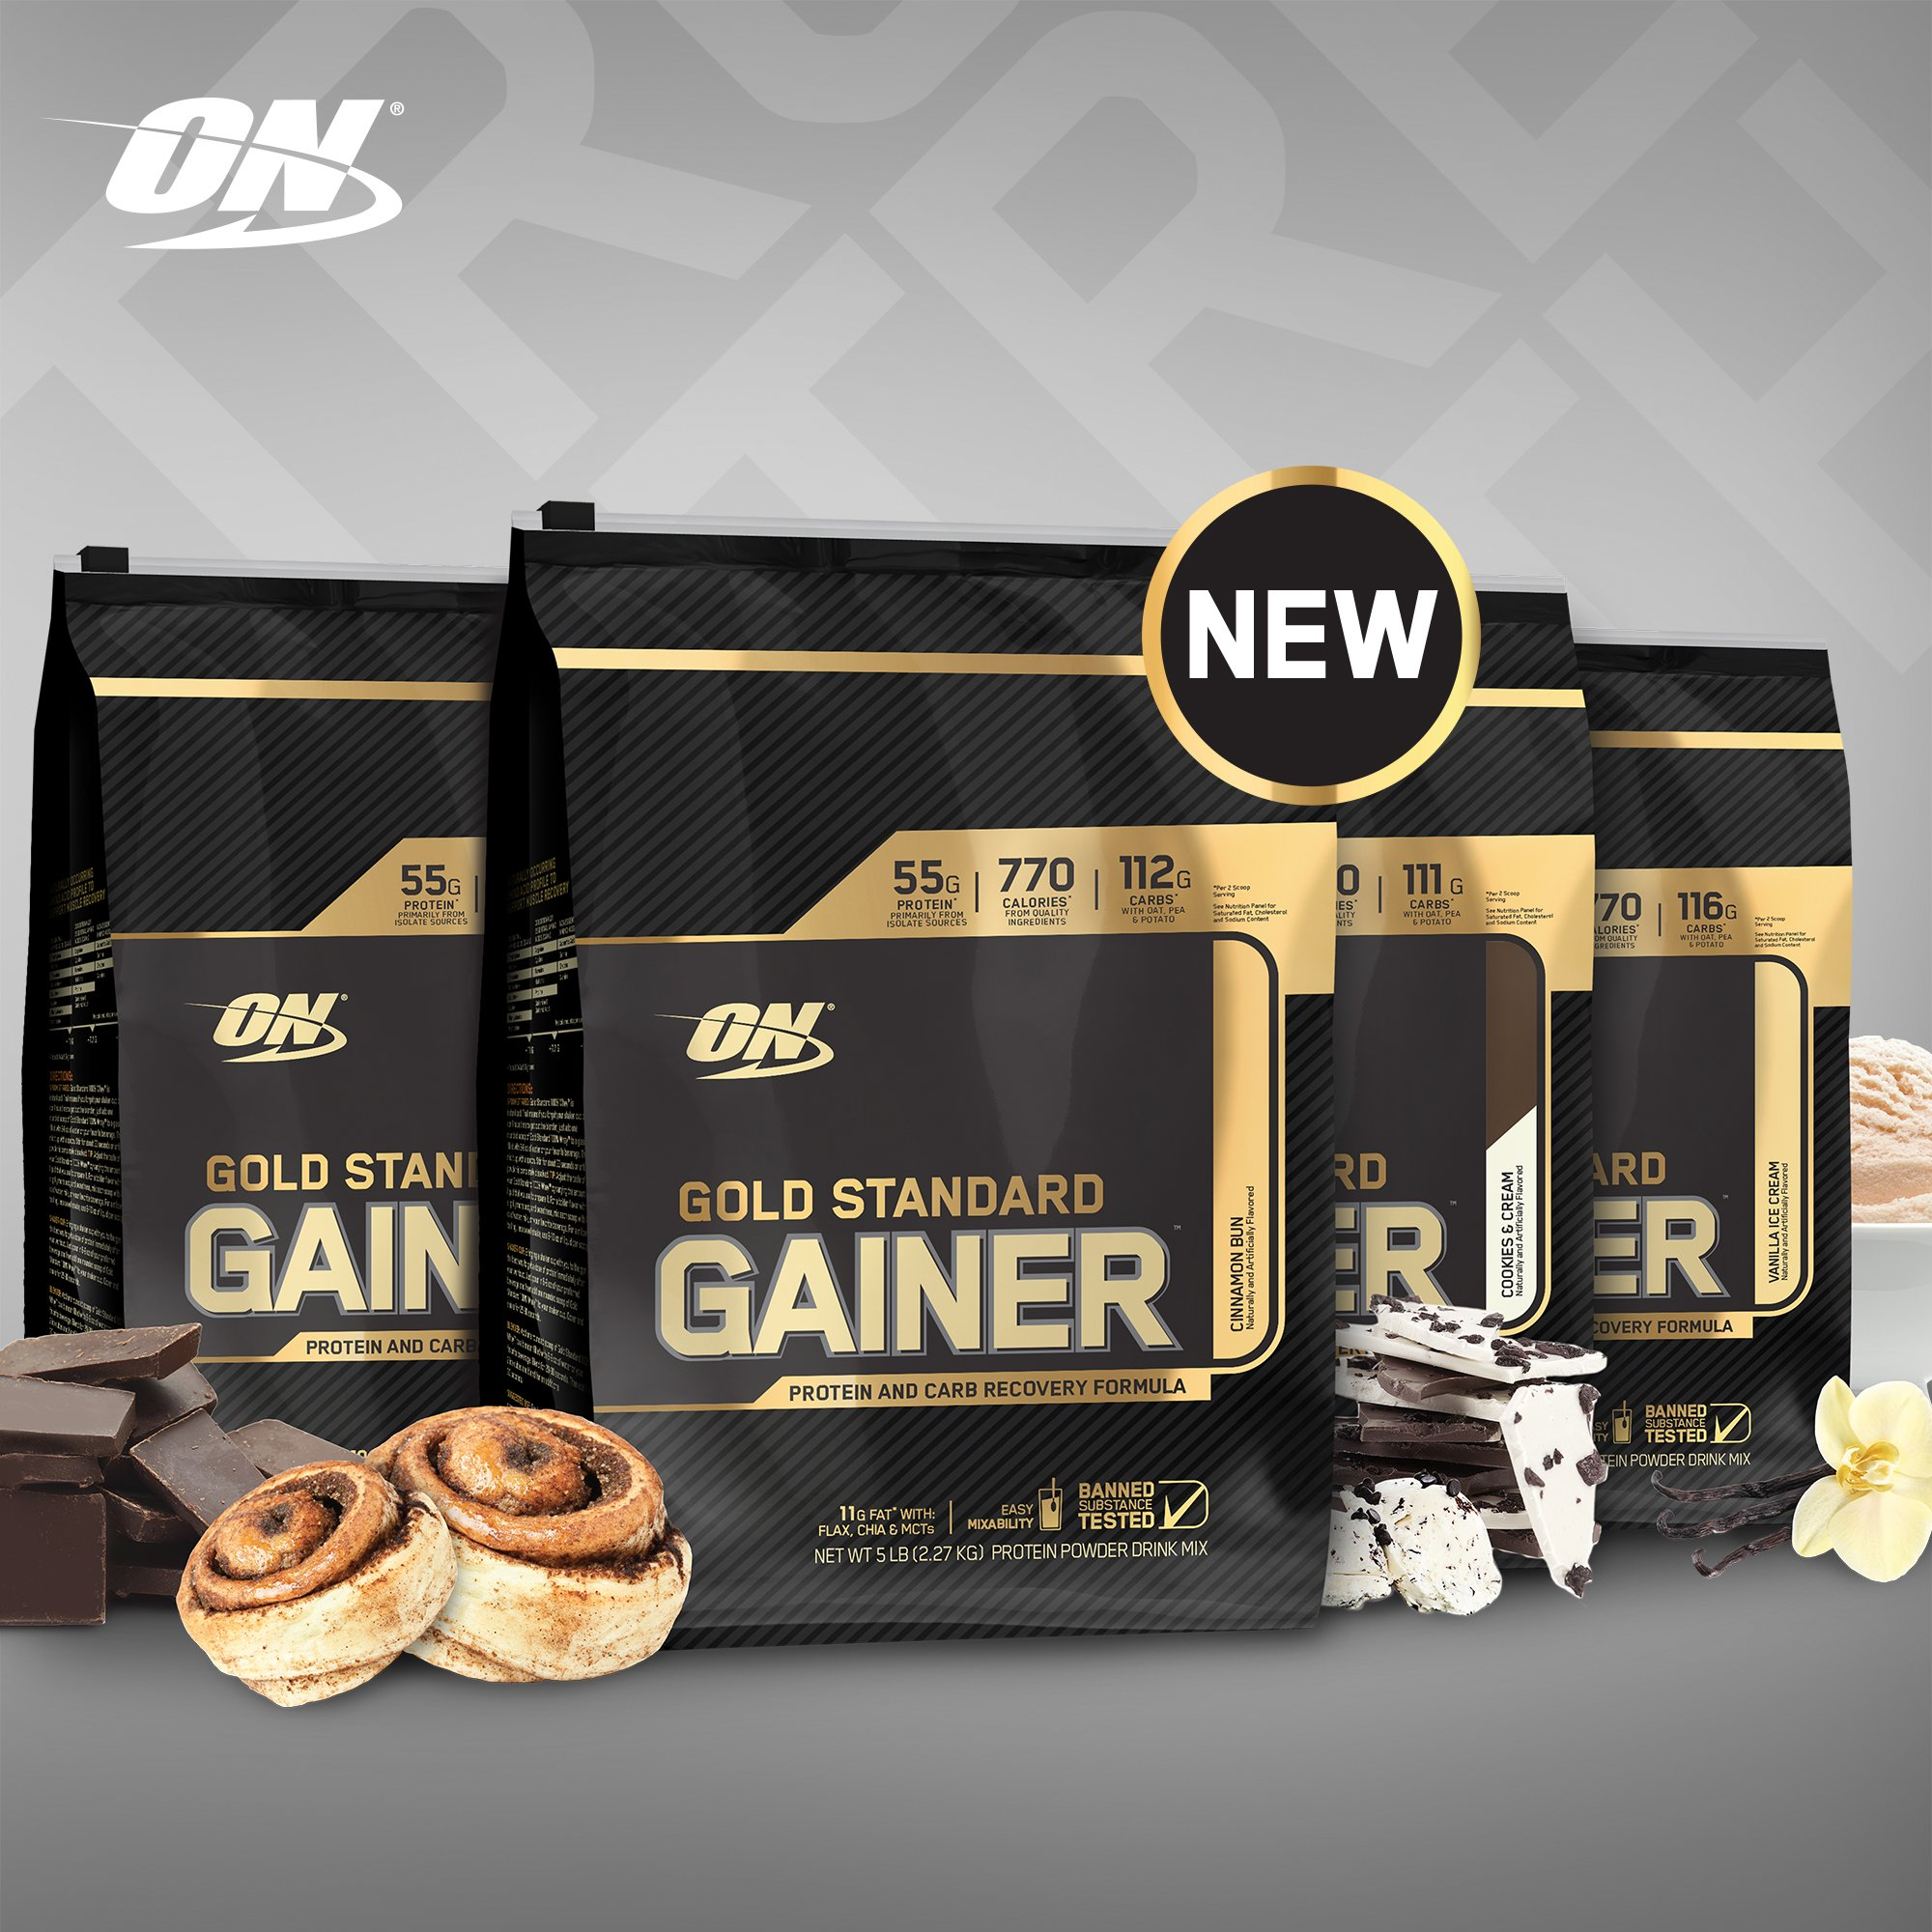 Introducing the #GoldStandard Gainer, with superior mixability, 55 grams of protein and 760 calories that count. https://t.co/1hgVrlMTxv